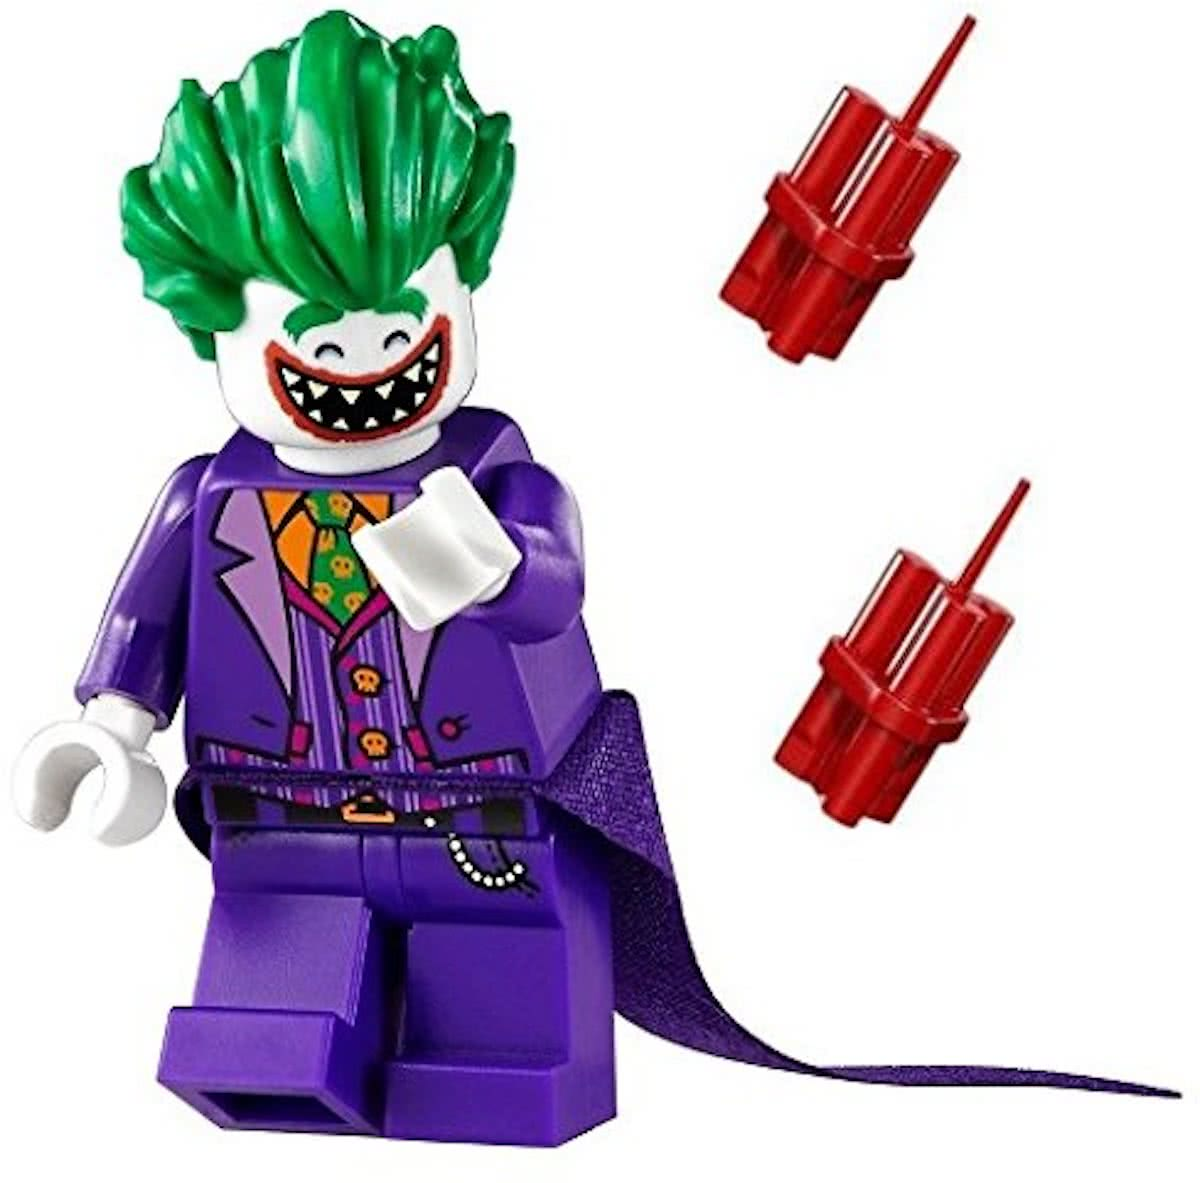 Lego Batman serie The Joker - polybag - Limited edition